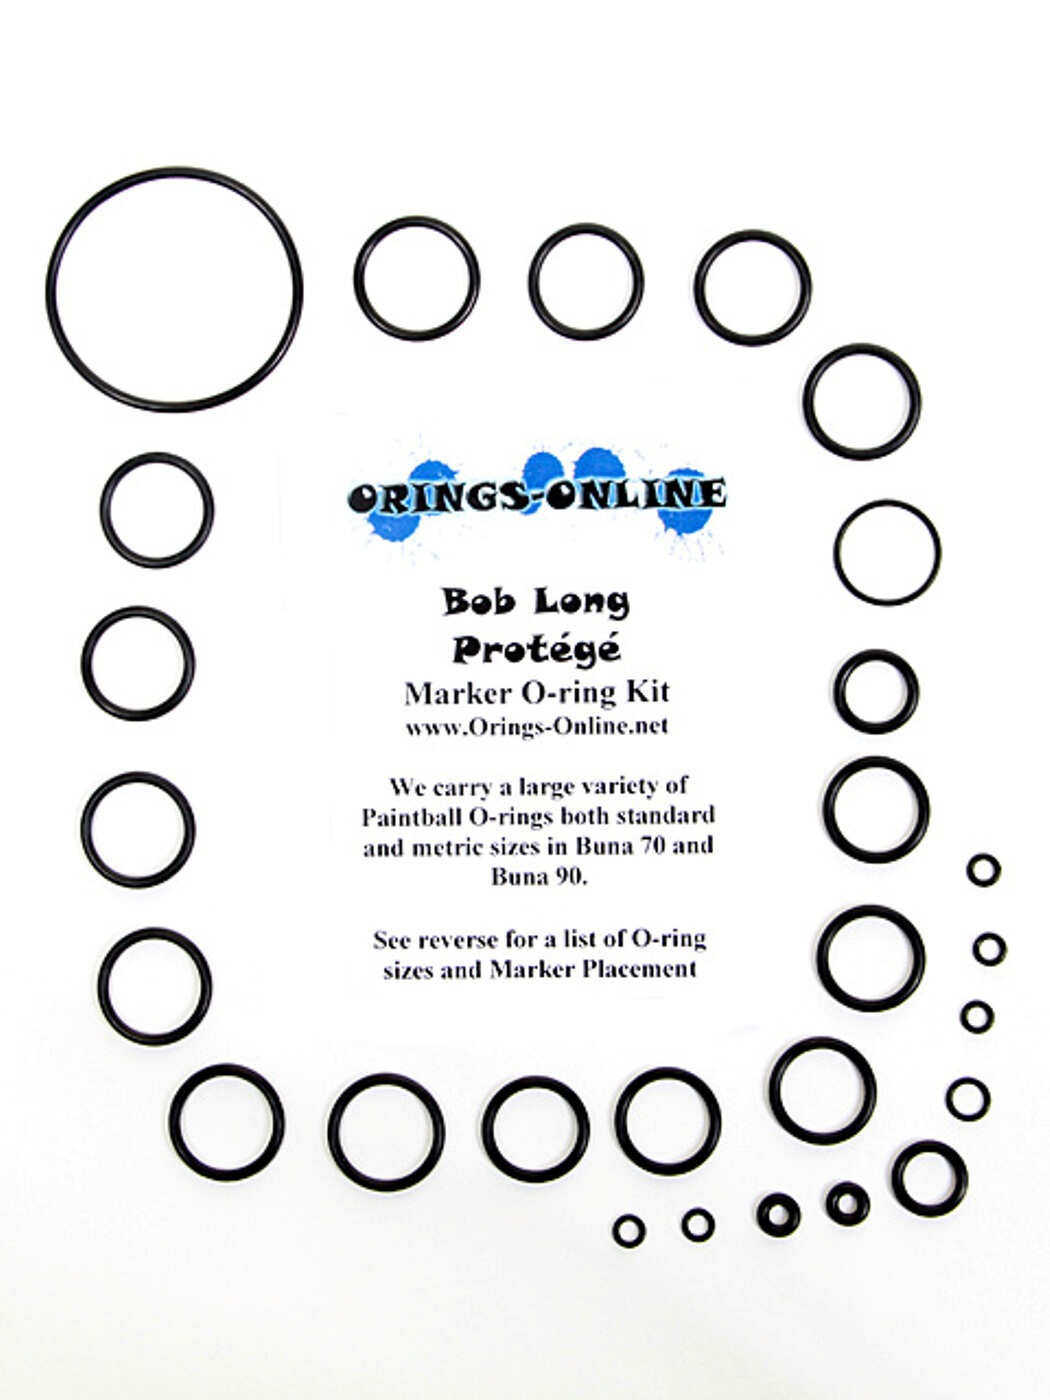 Bob Long Protege Marker O-ring Kit